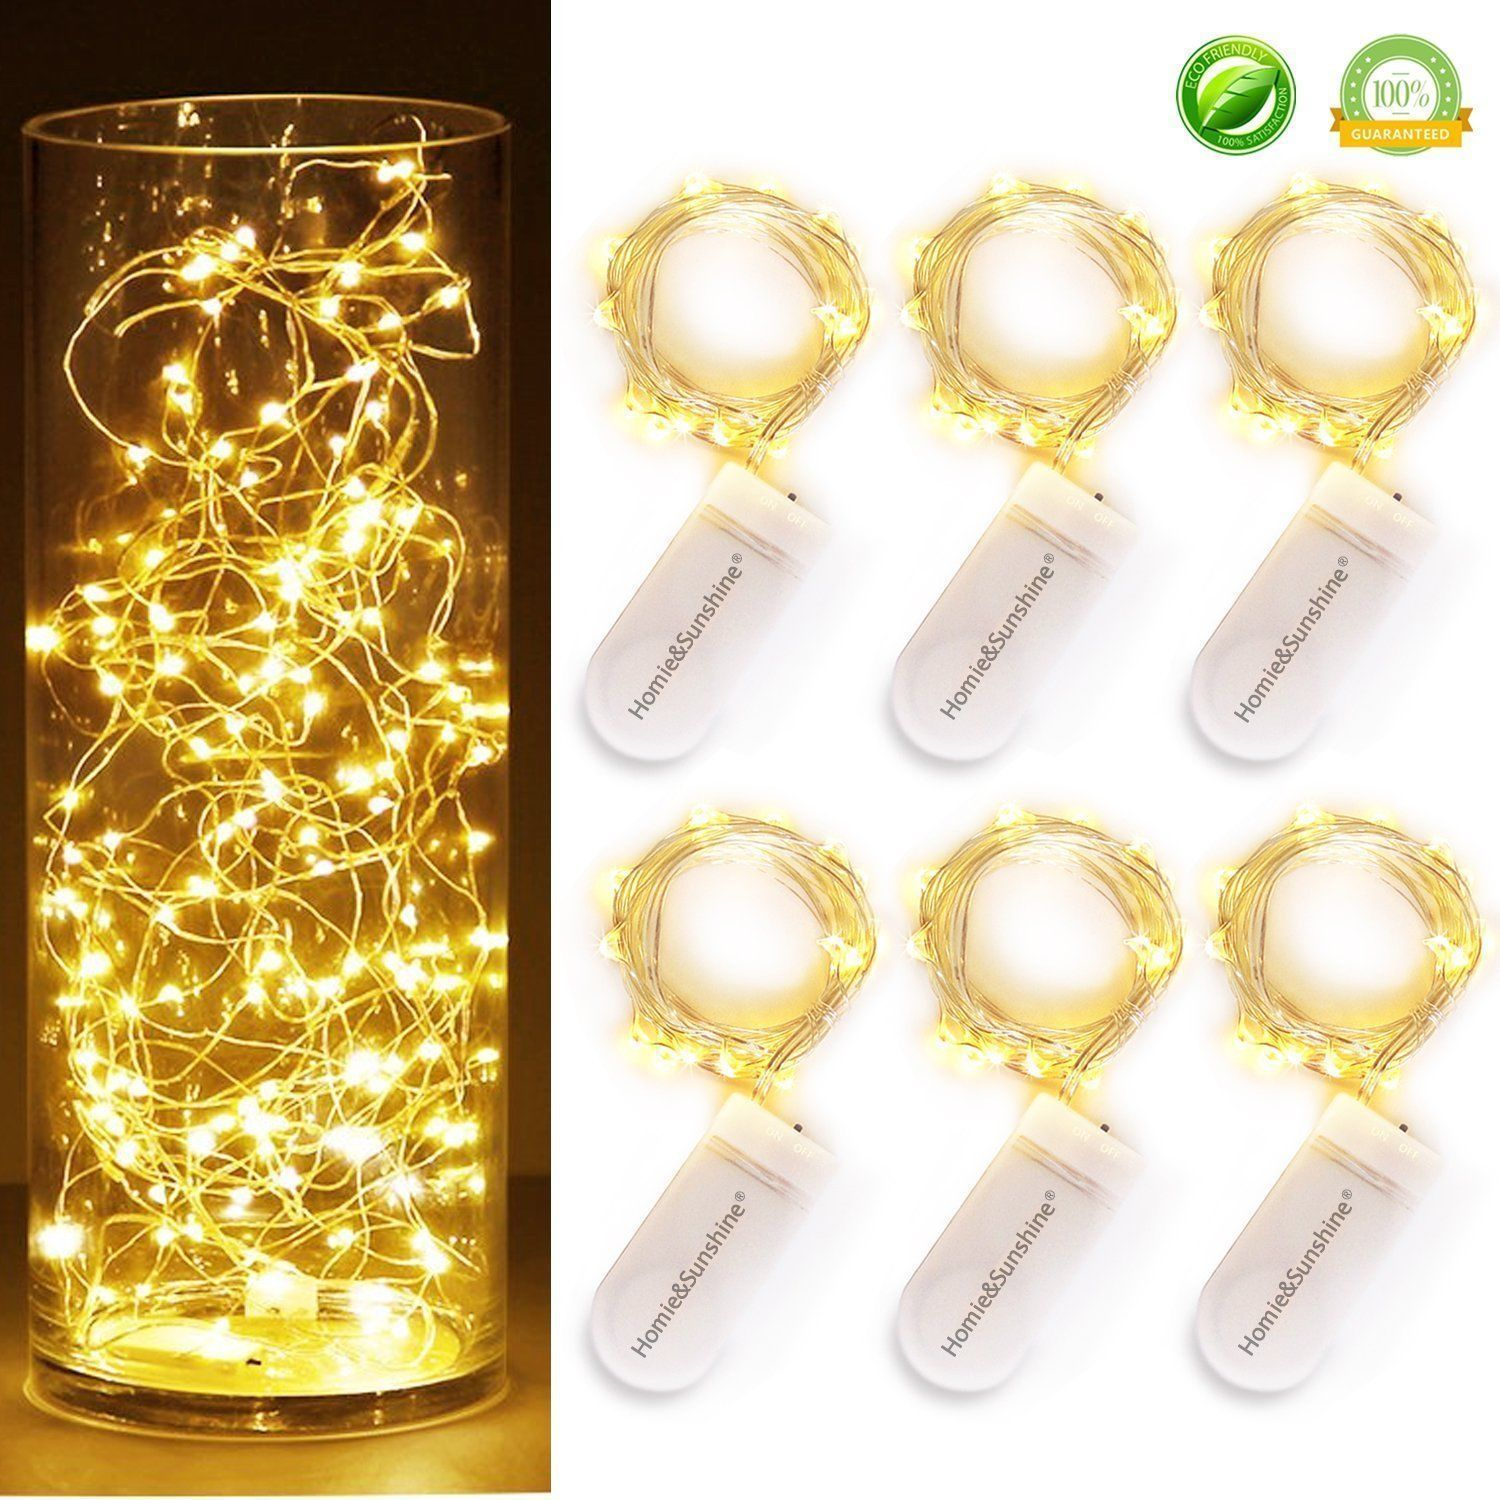 6 x 2M 20 LED Mini Starry LED Copper Wire String Fairy Lights Battery Operated